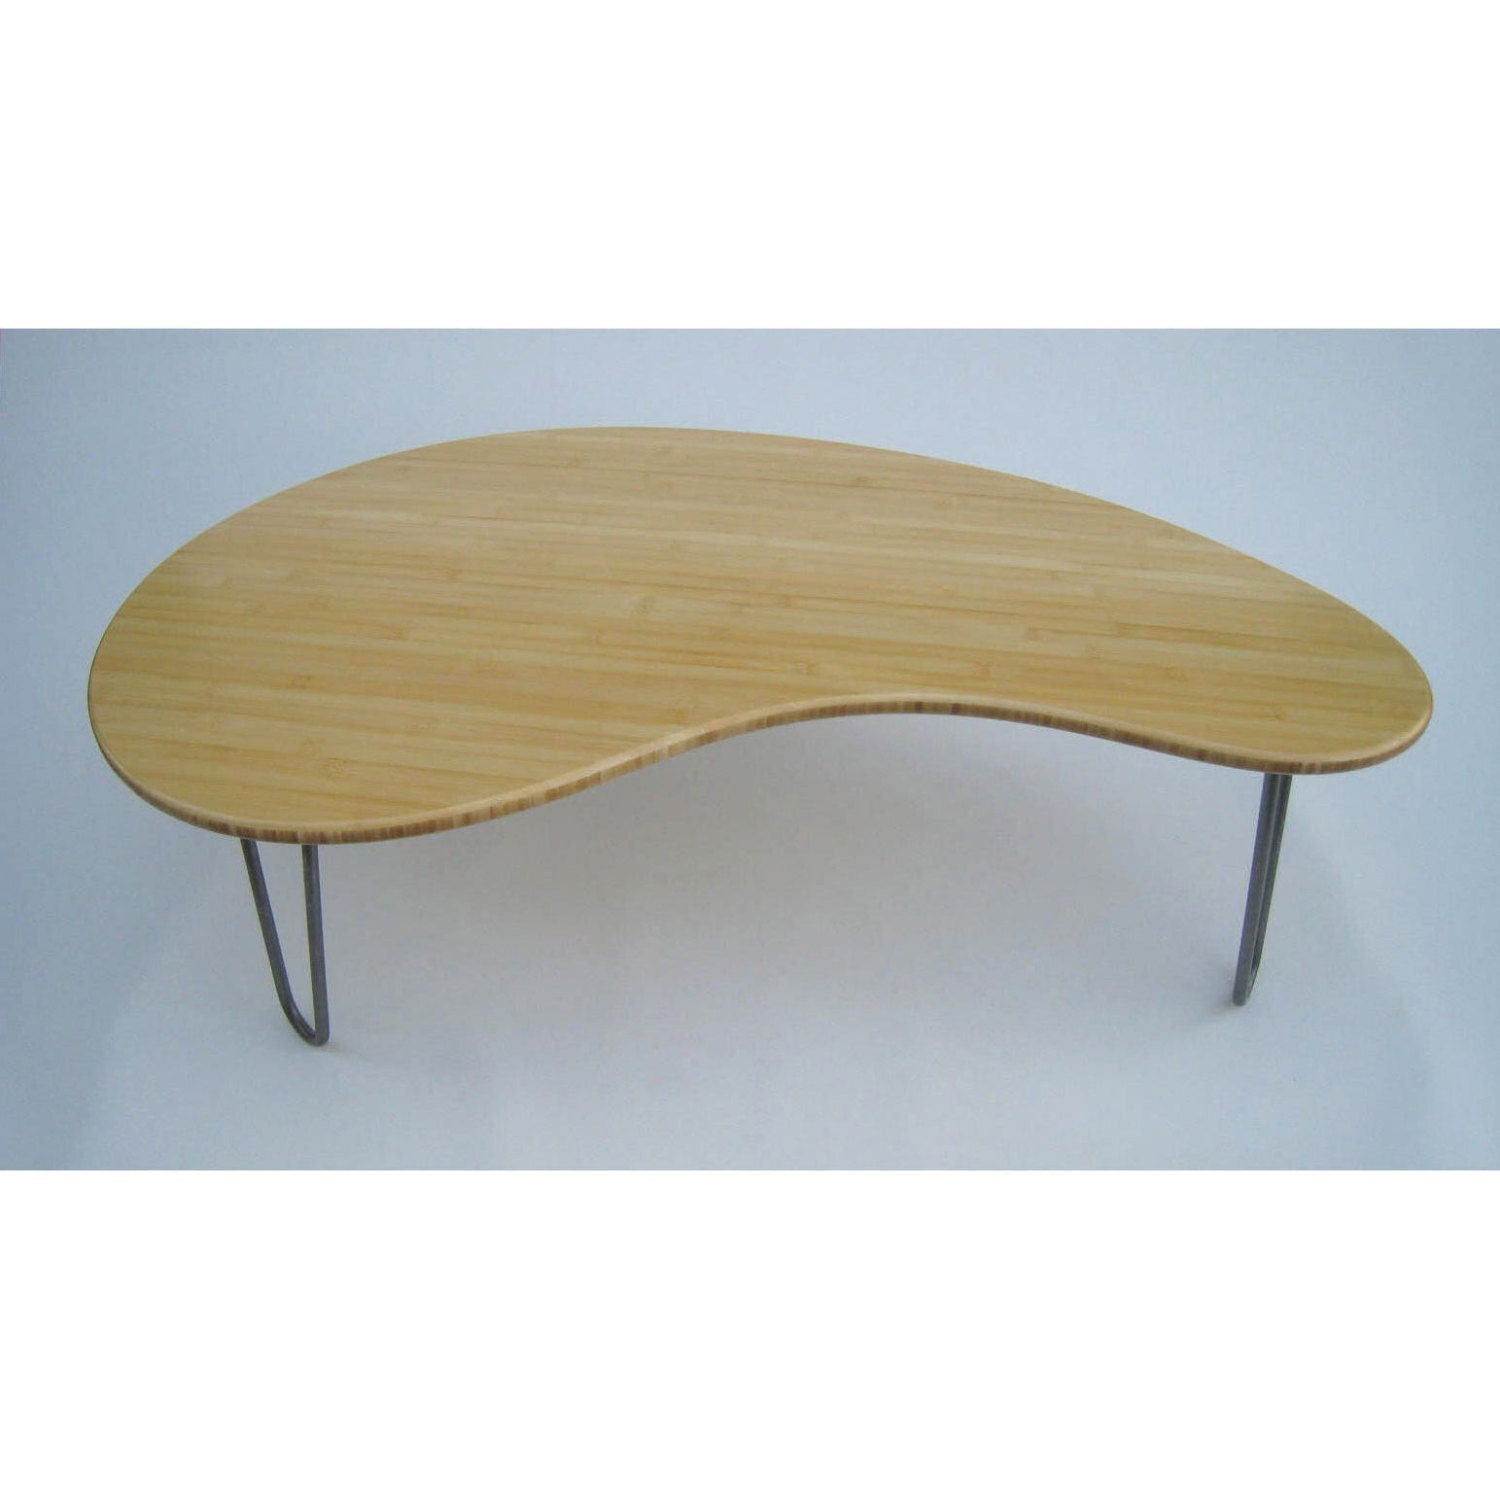 Mid century modern coffee table kidney bean shaped amorphic Mid century coffee tables